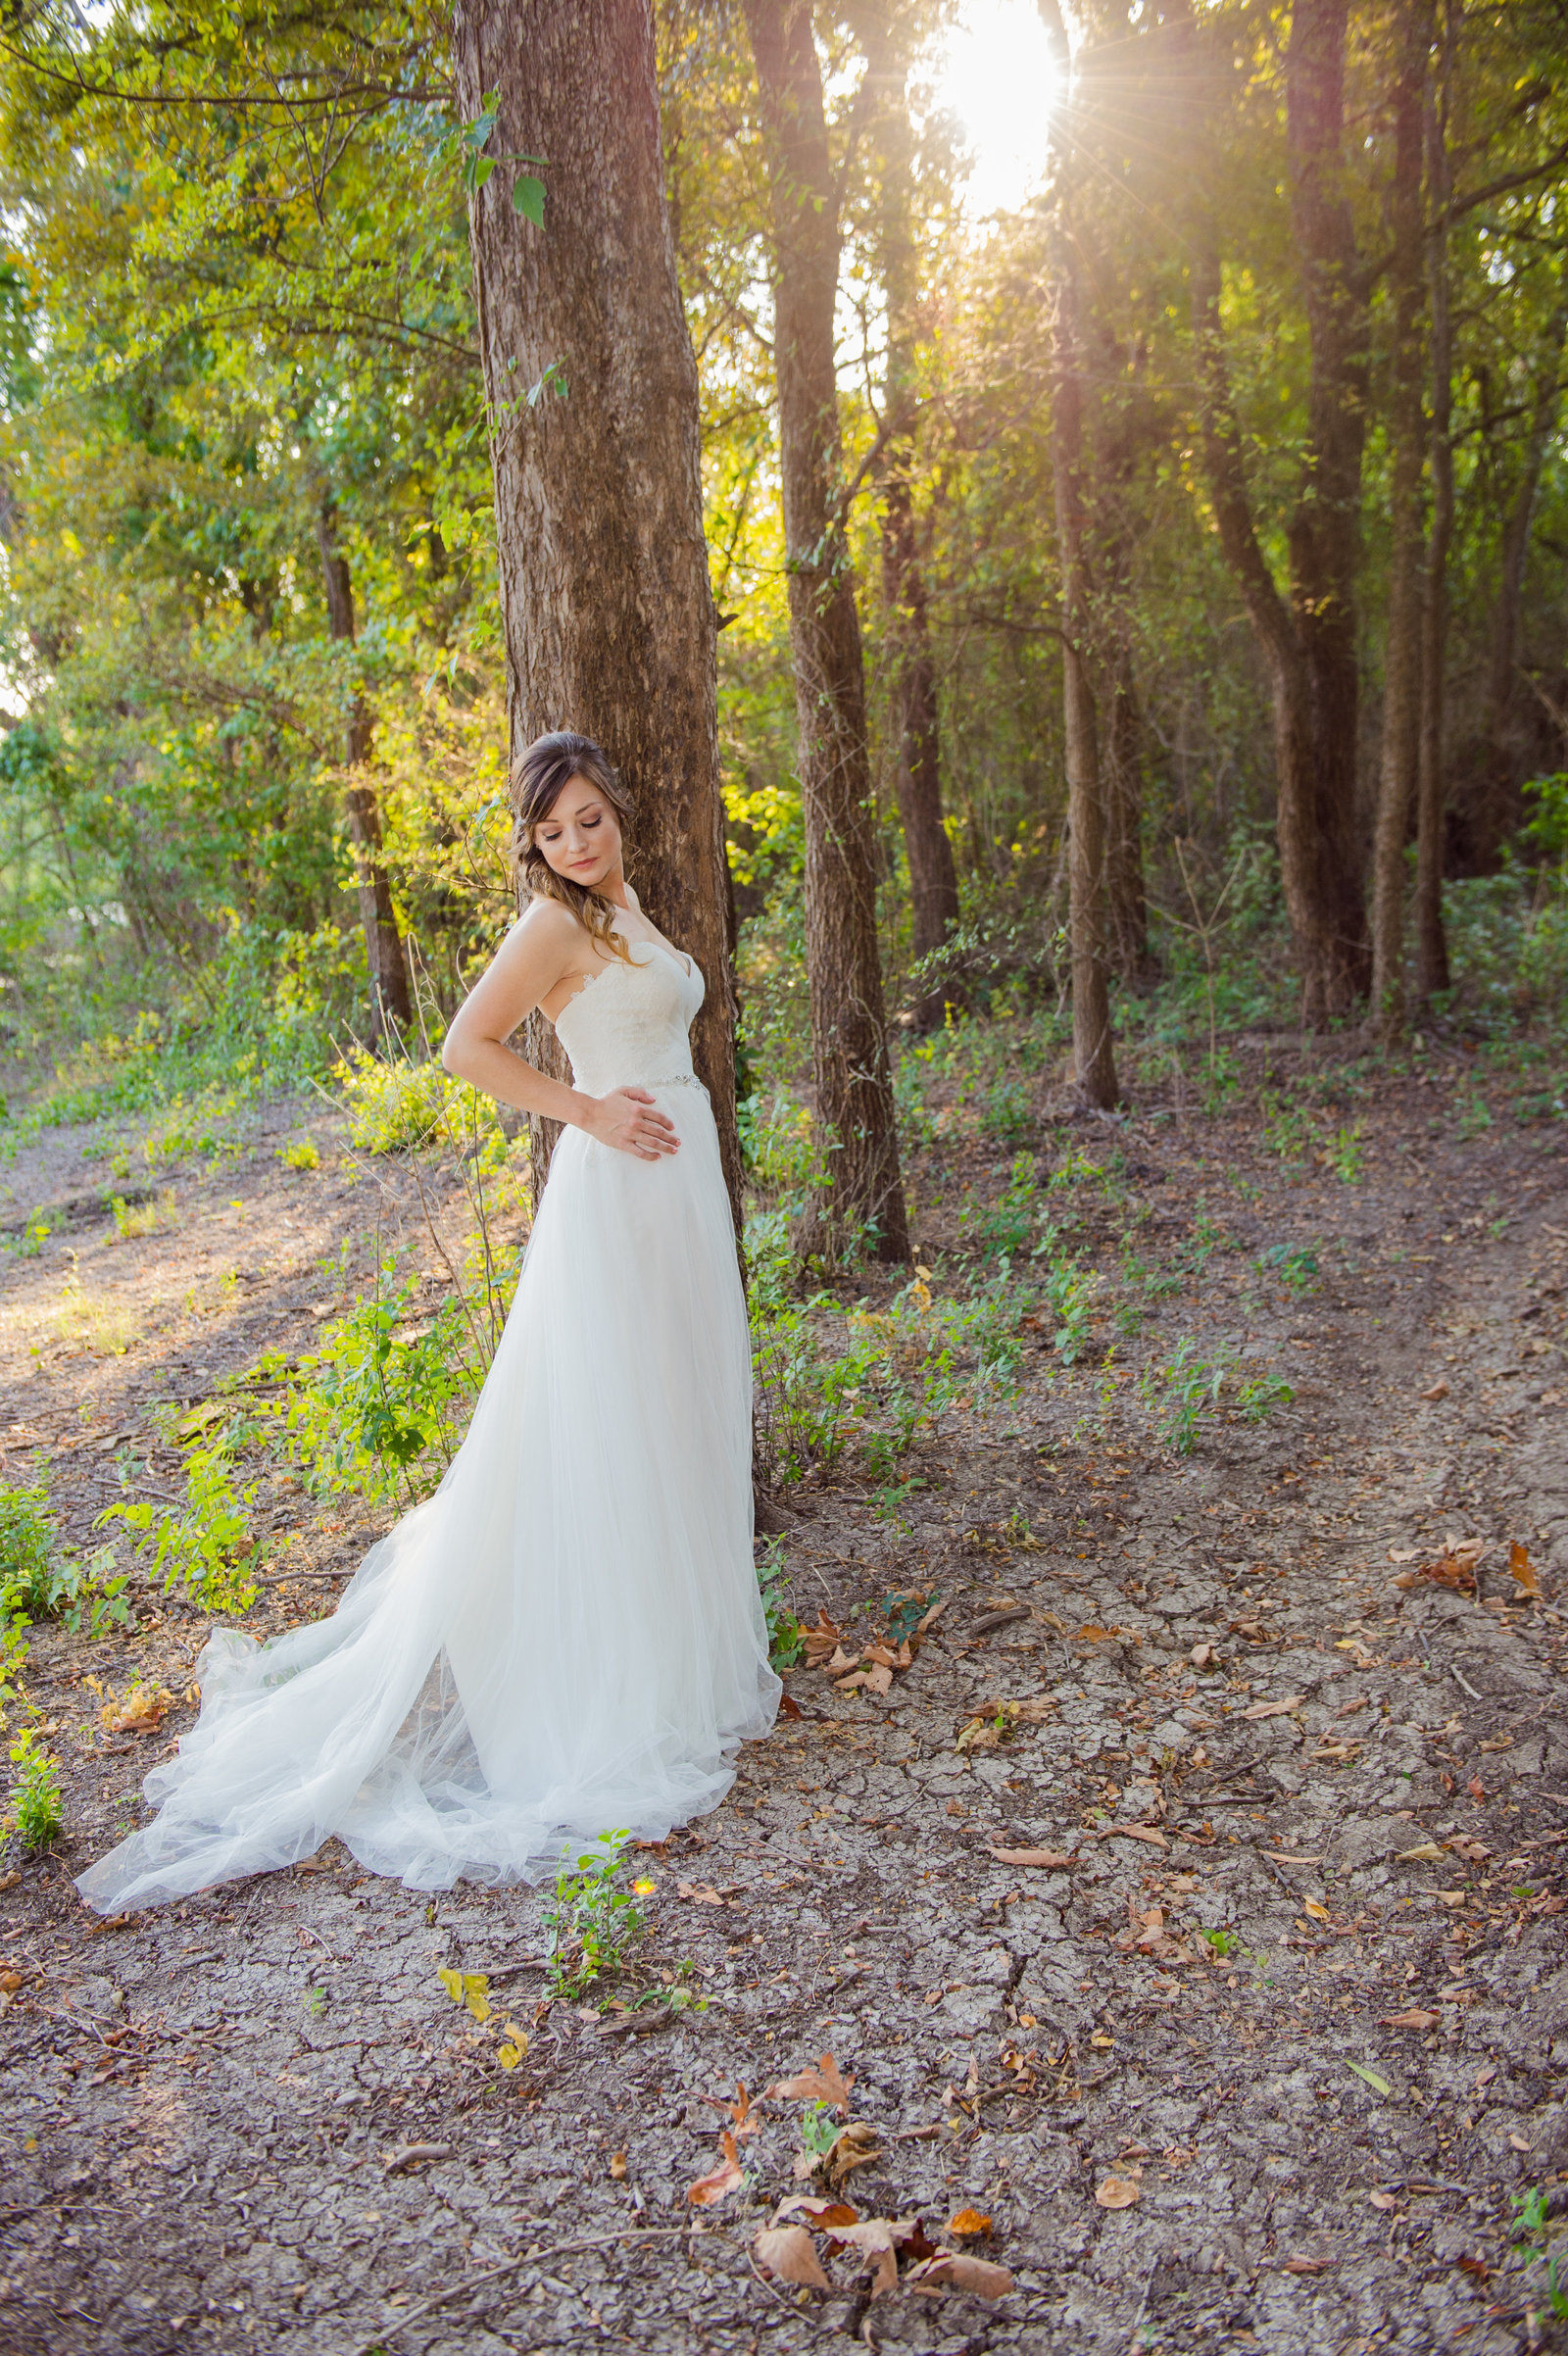 Bride in the woods by Brittany Barclay Photography